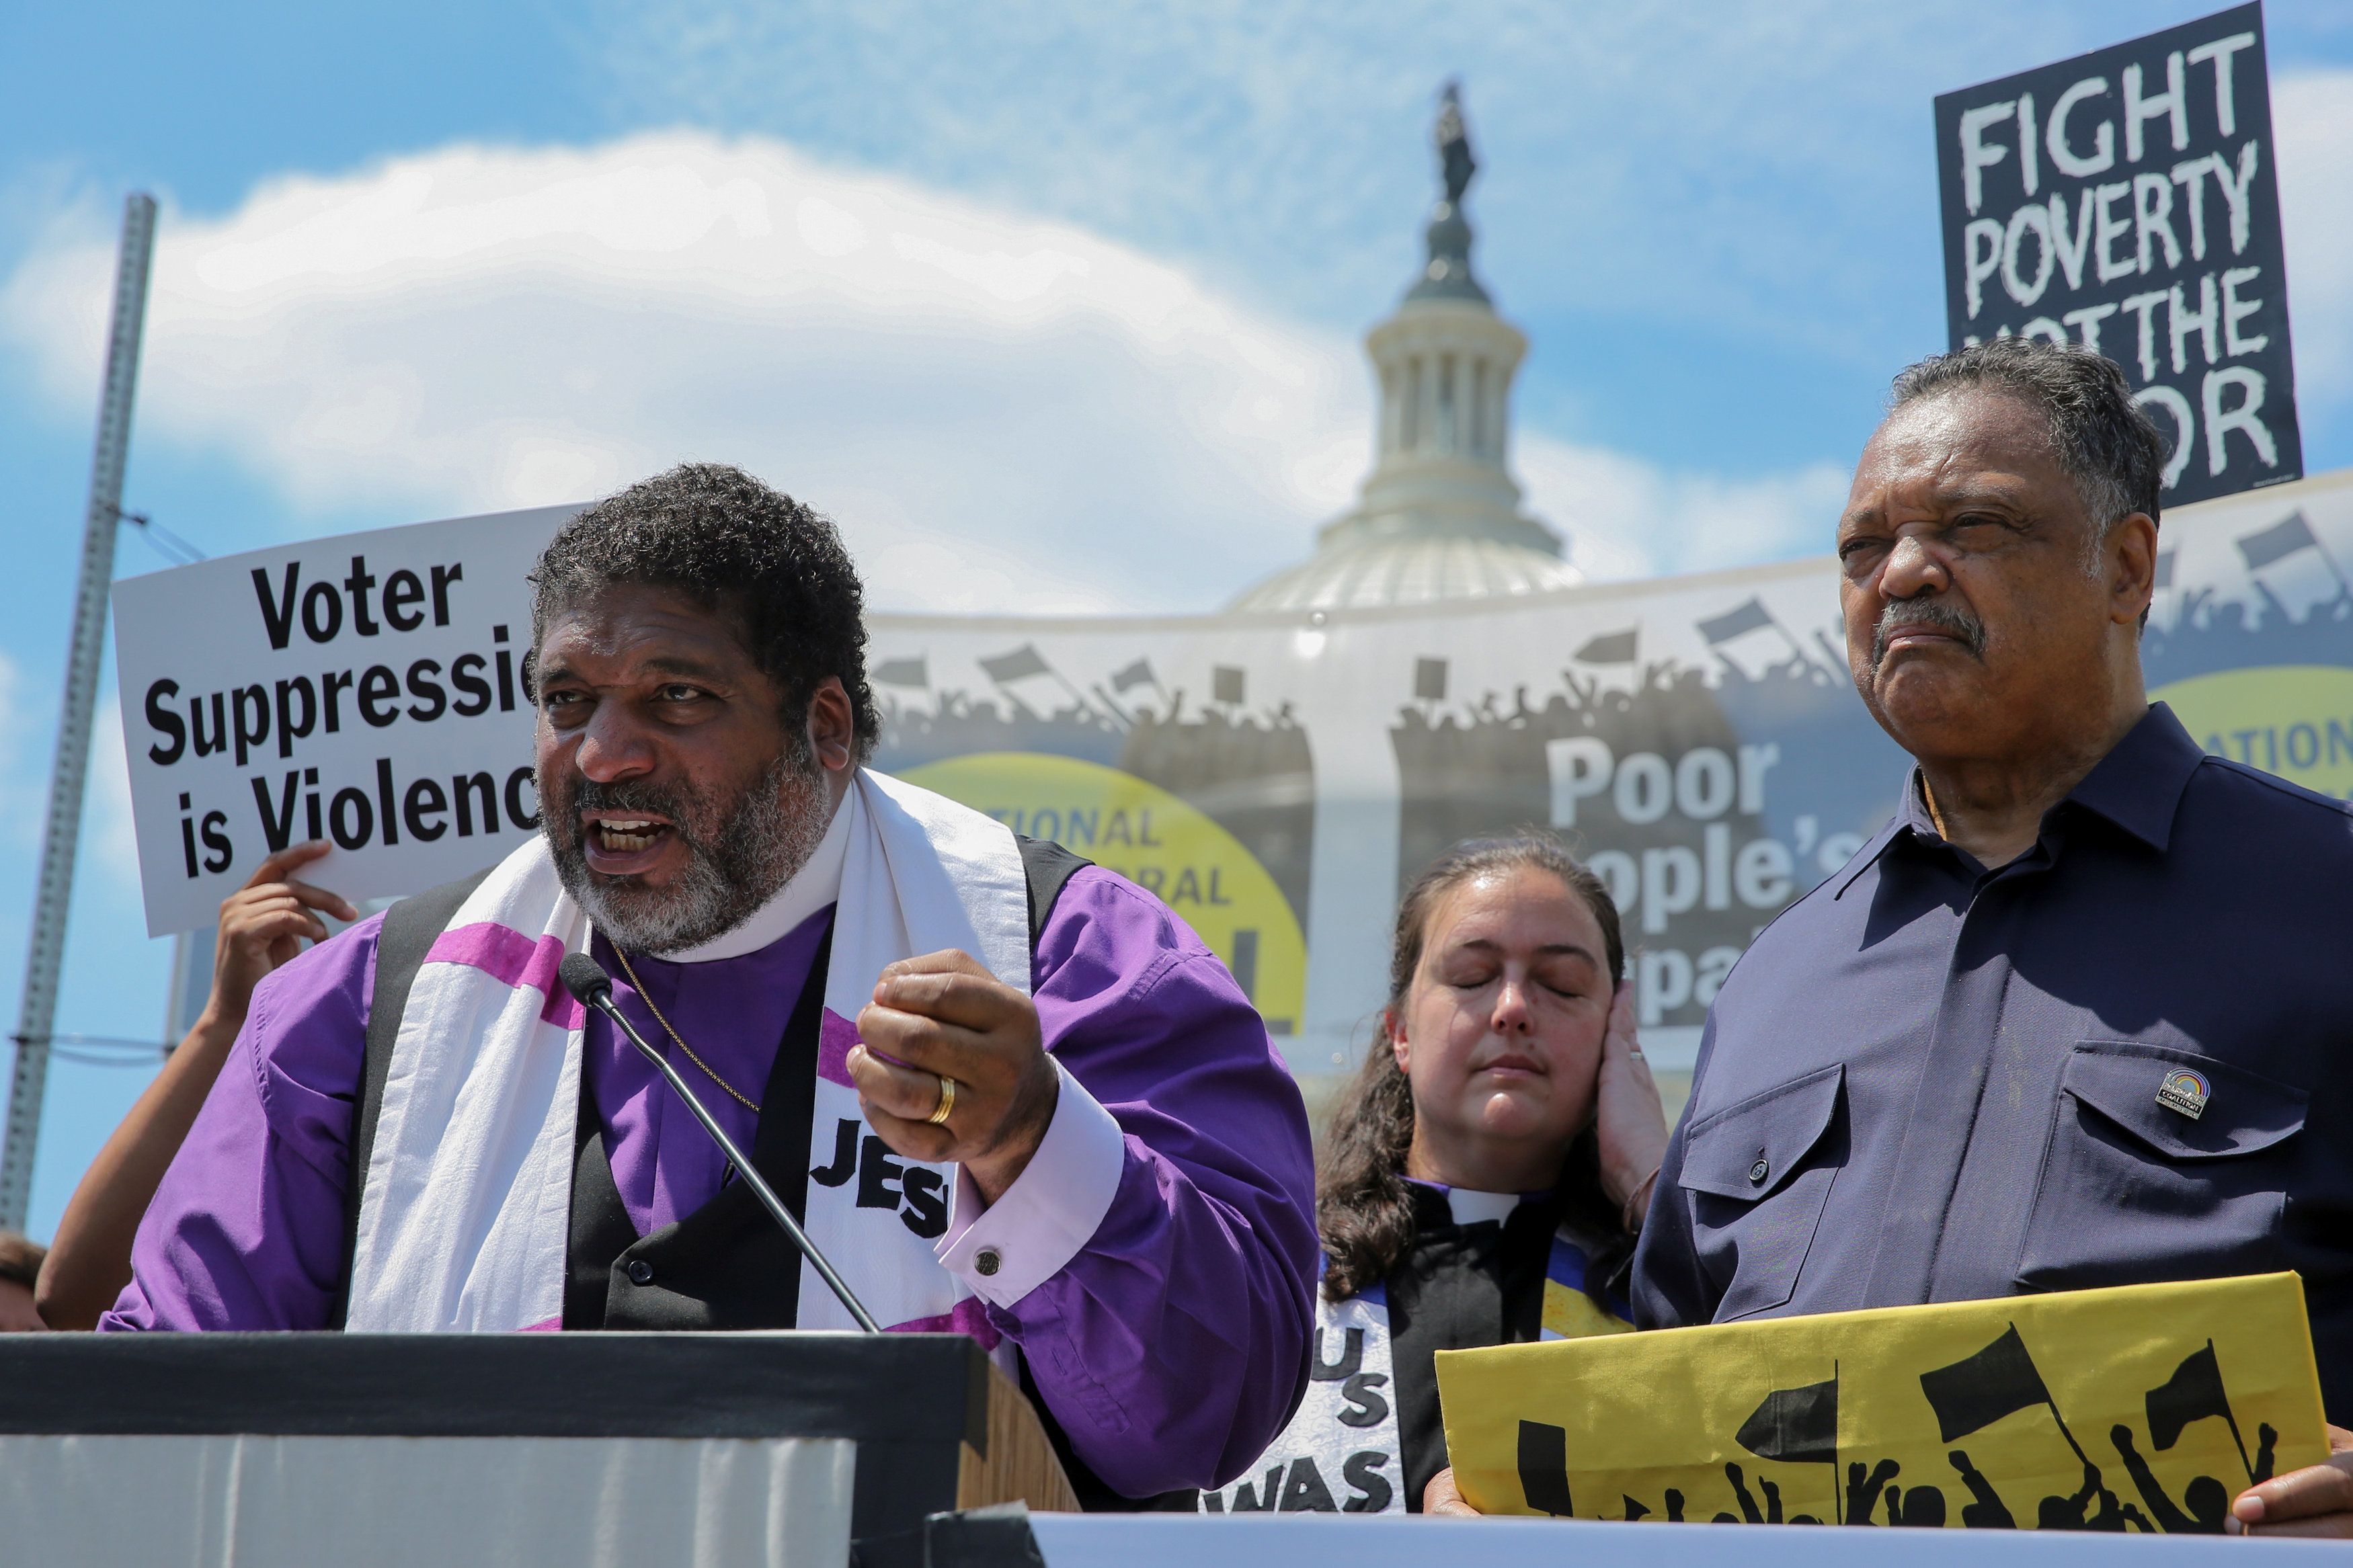 Rev. William Barber (L), Rev. Jesse Jackson (R) and Liz Theoharis (C) hold a Poor People's Campaign rally at the U.S. Capitol in Washington, U.S. May 21, 2018.  REUTERS/Jonathan Ernst